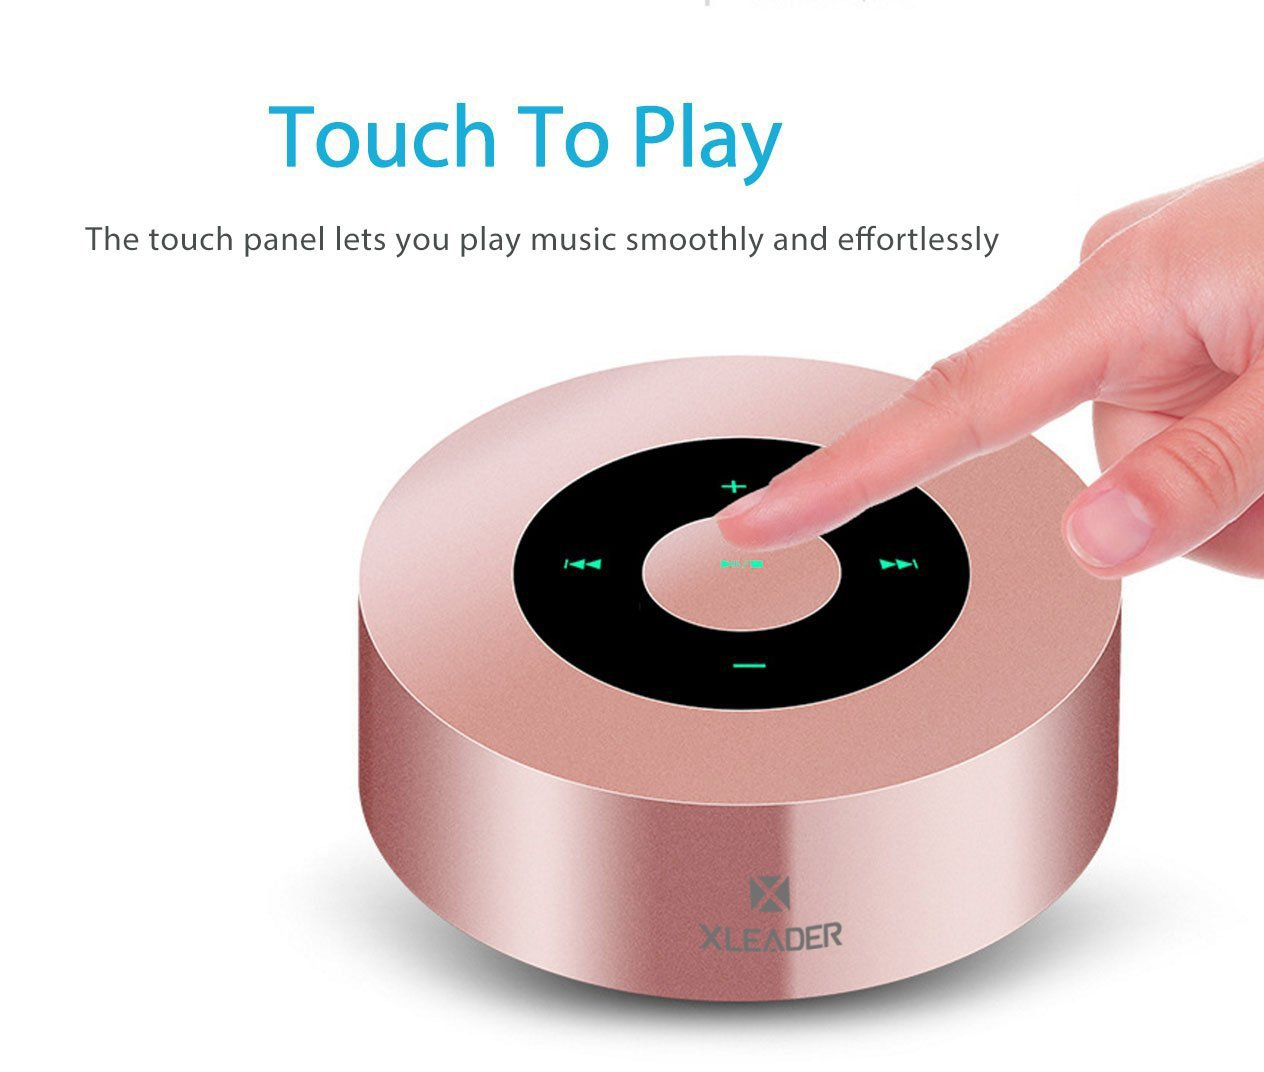 [LED Touch Design] Bluetooth Speaker, XLeader Portable Speaker with HD Sound / 12-Hour Playtime / Bluetooth 4.1 / Micro SD Support, for iphone/ipad/Tablet/Laptop/Echo dot (Rose gold) by XLeader (Image #2)